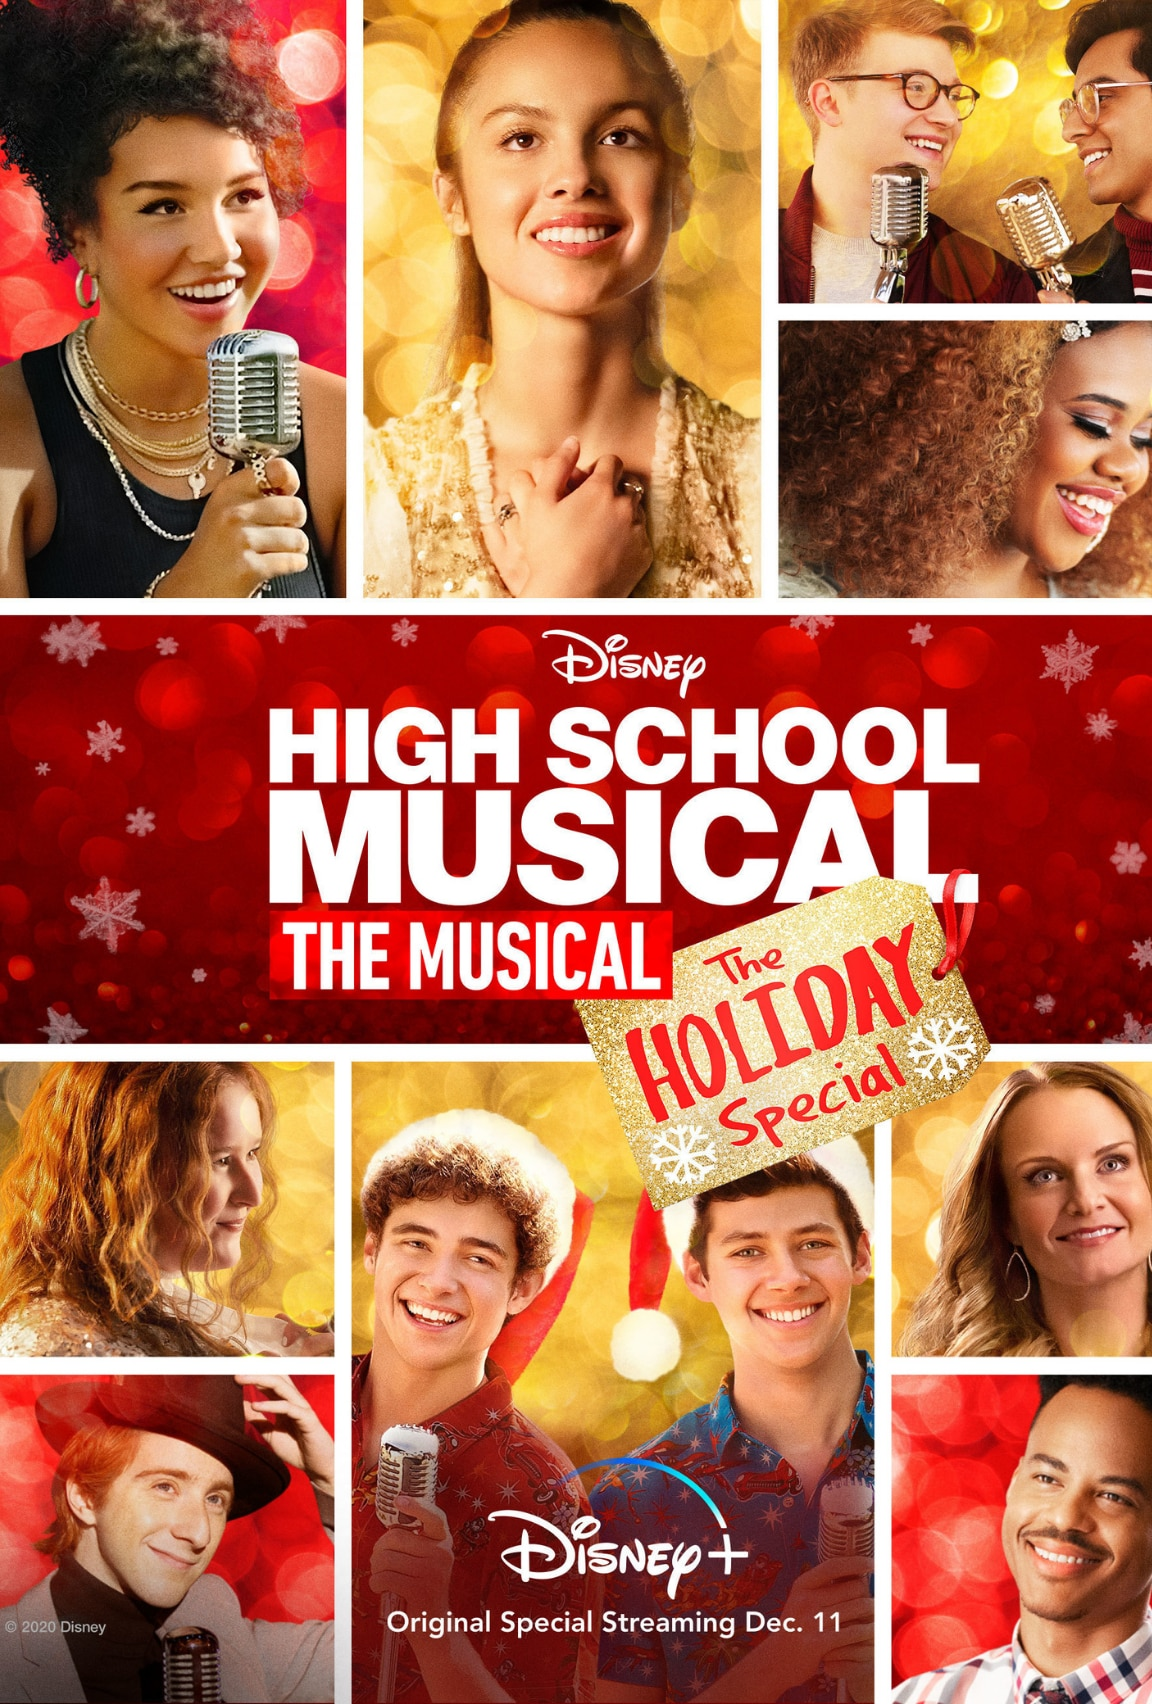 High School Musical: The Musical: The Holiday Special on Disney Plus